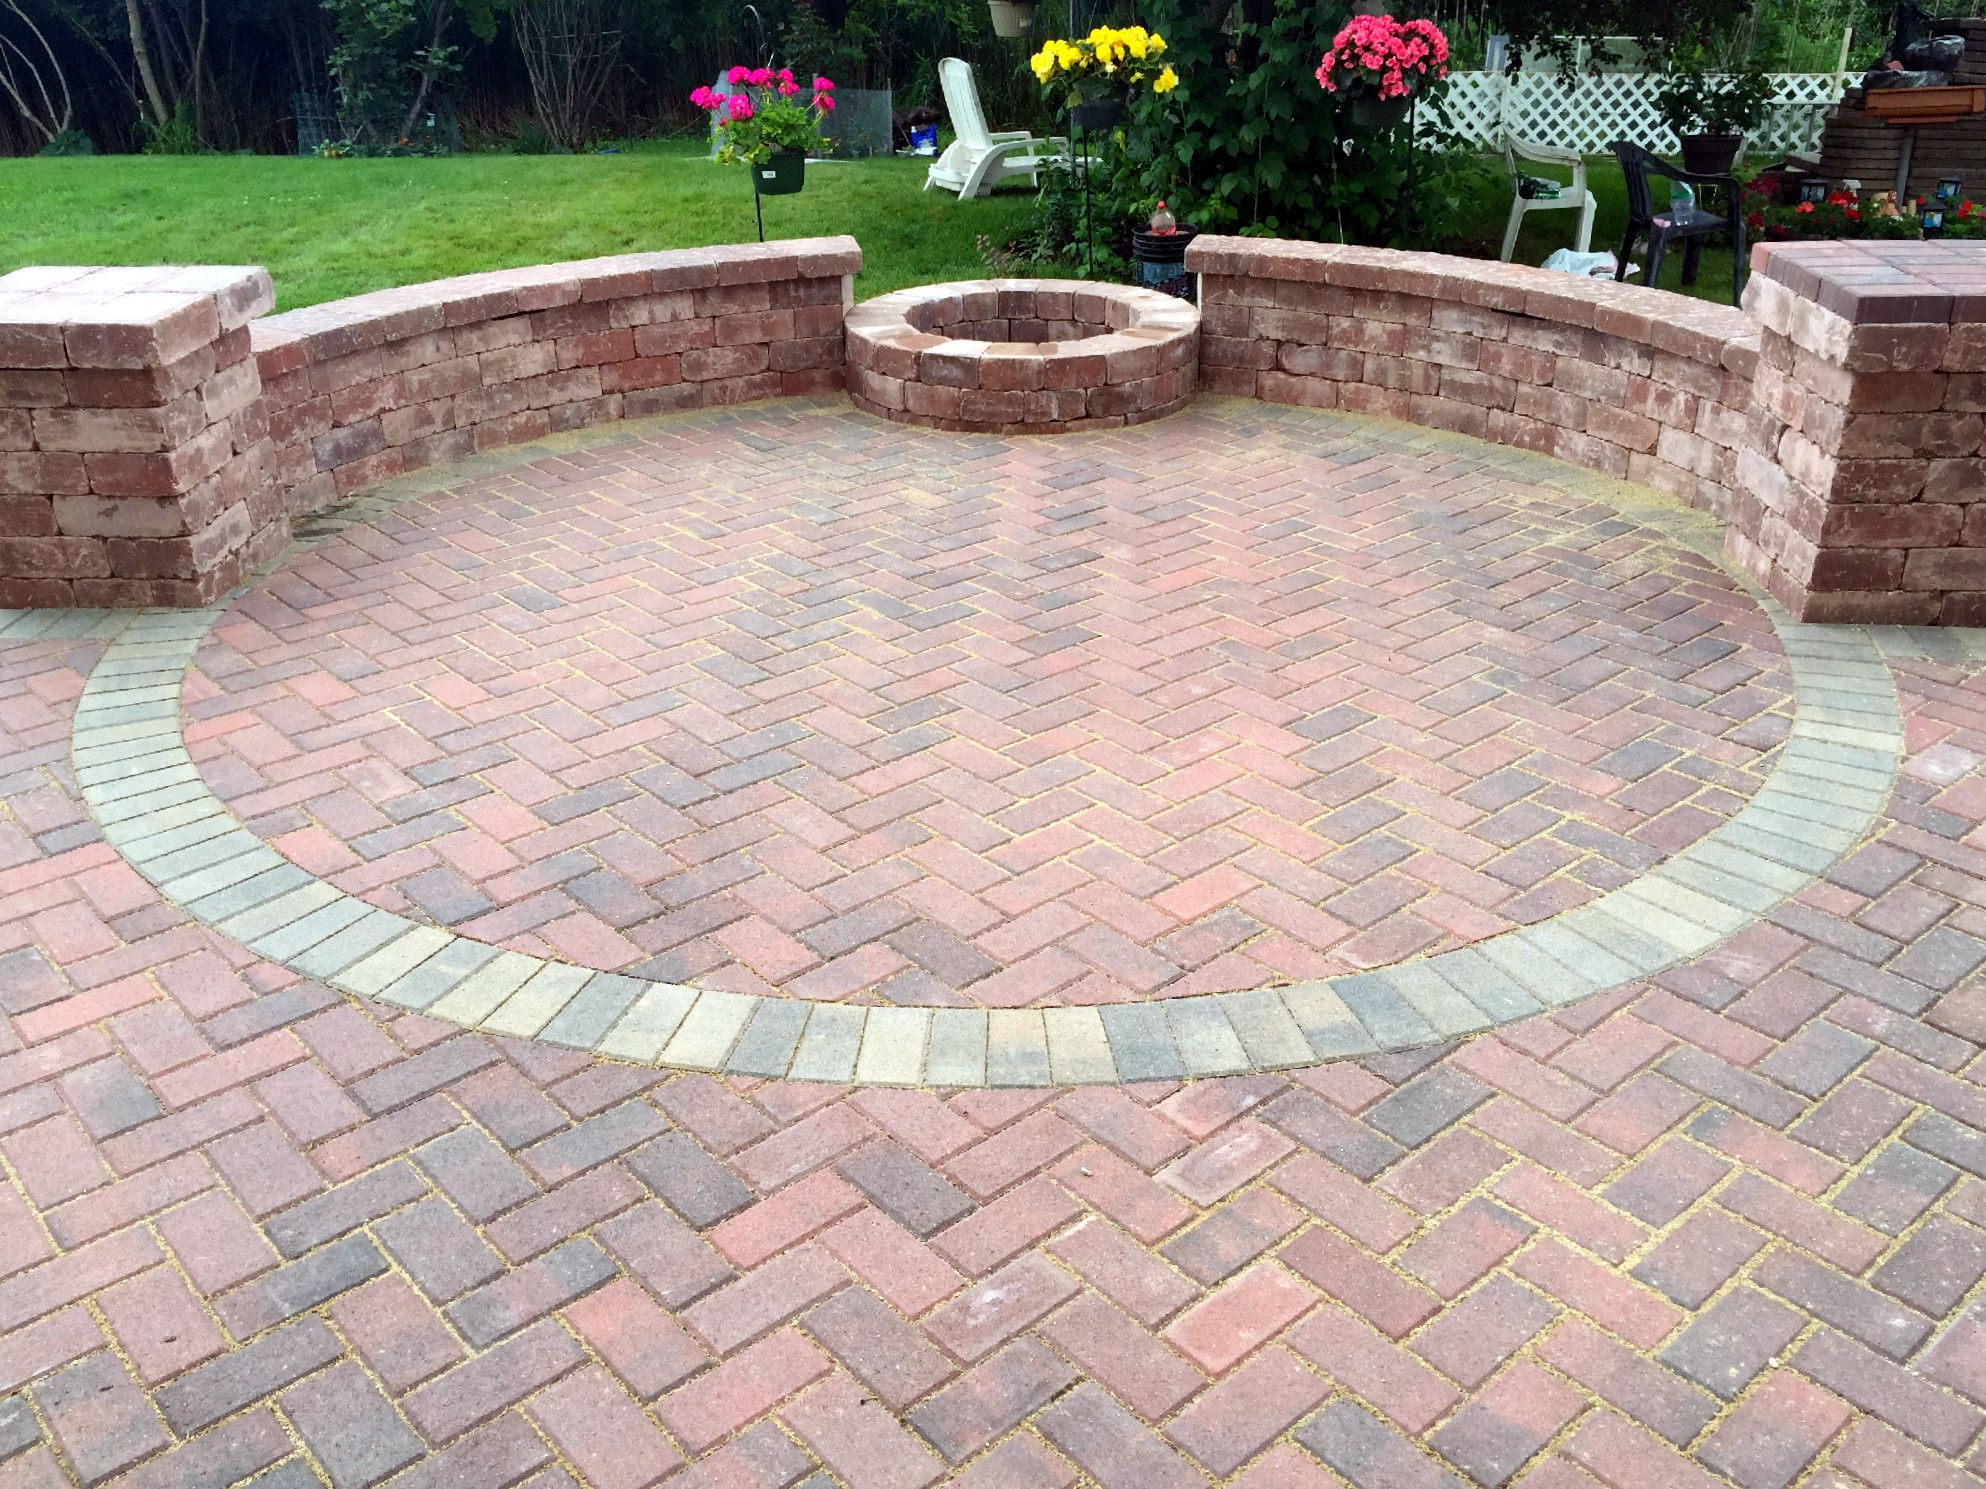 Belgard Holland Stone Patio With Fire Pit By Mundelein, IL Patio Builder,  Archadeck Of. Patio BuildersPaver Patio DesignsPatio ...